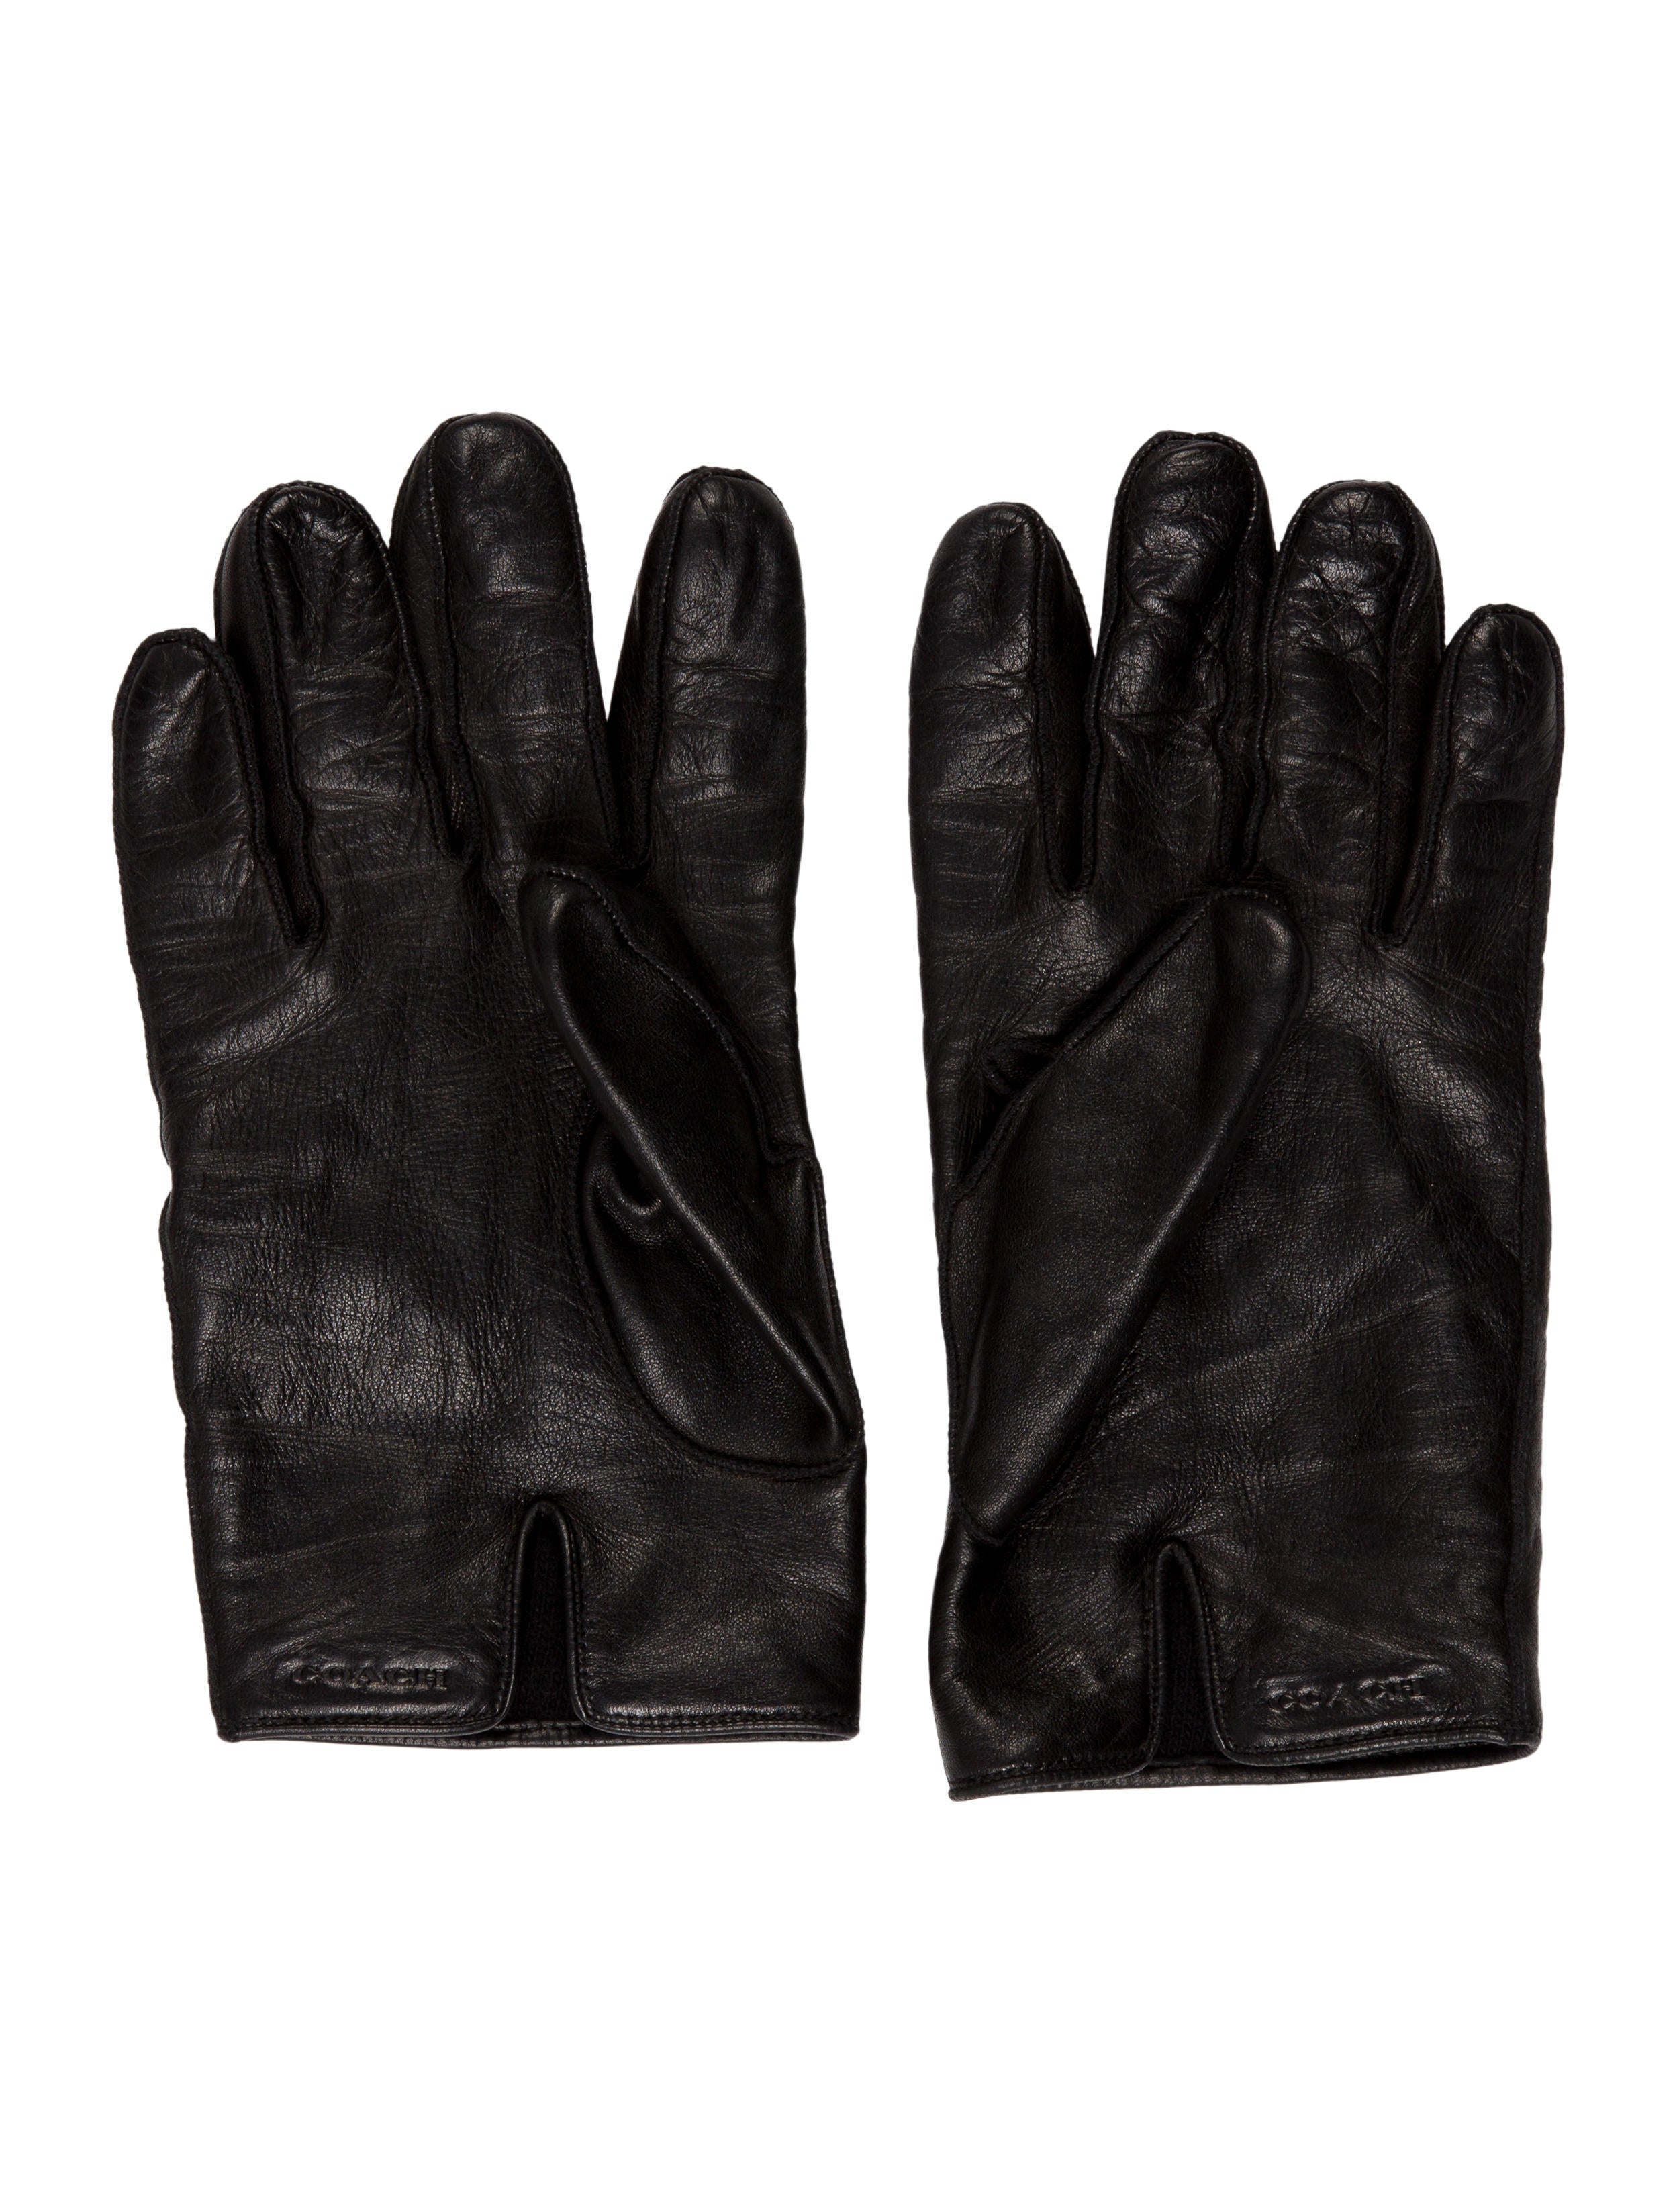 Care of Fine Leather Fine leather deserves good care. The appropriate treatment of a leather item depends upon its condition, or the degree of deterioration when treatment is started.